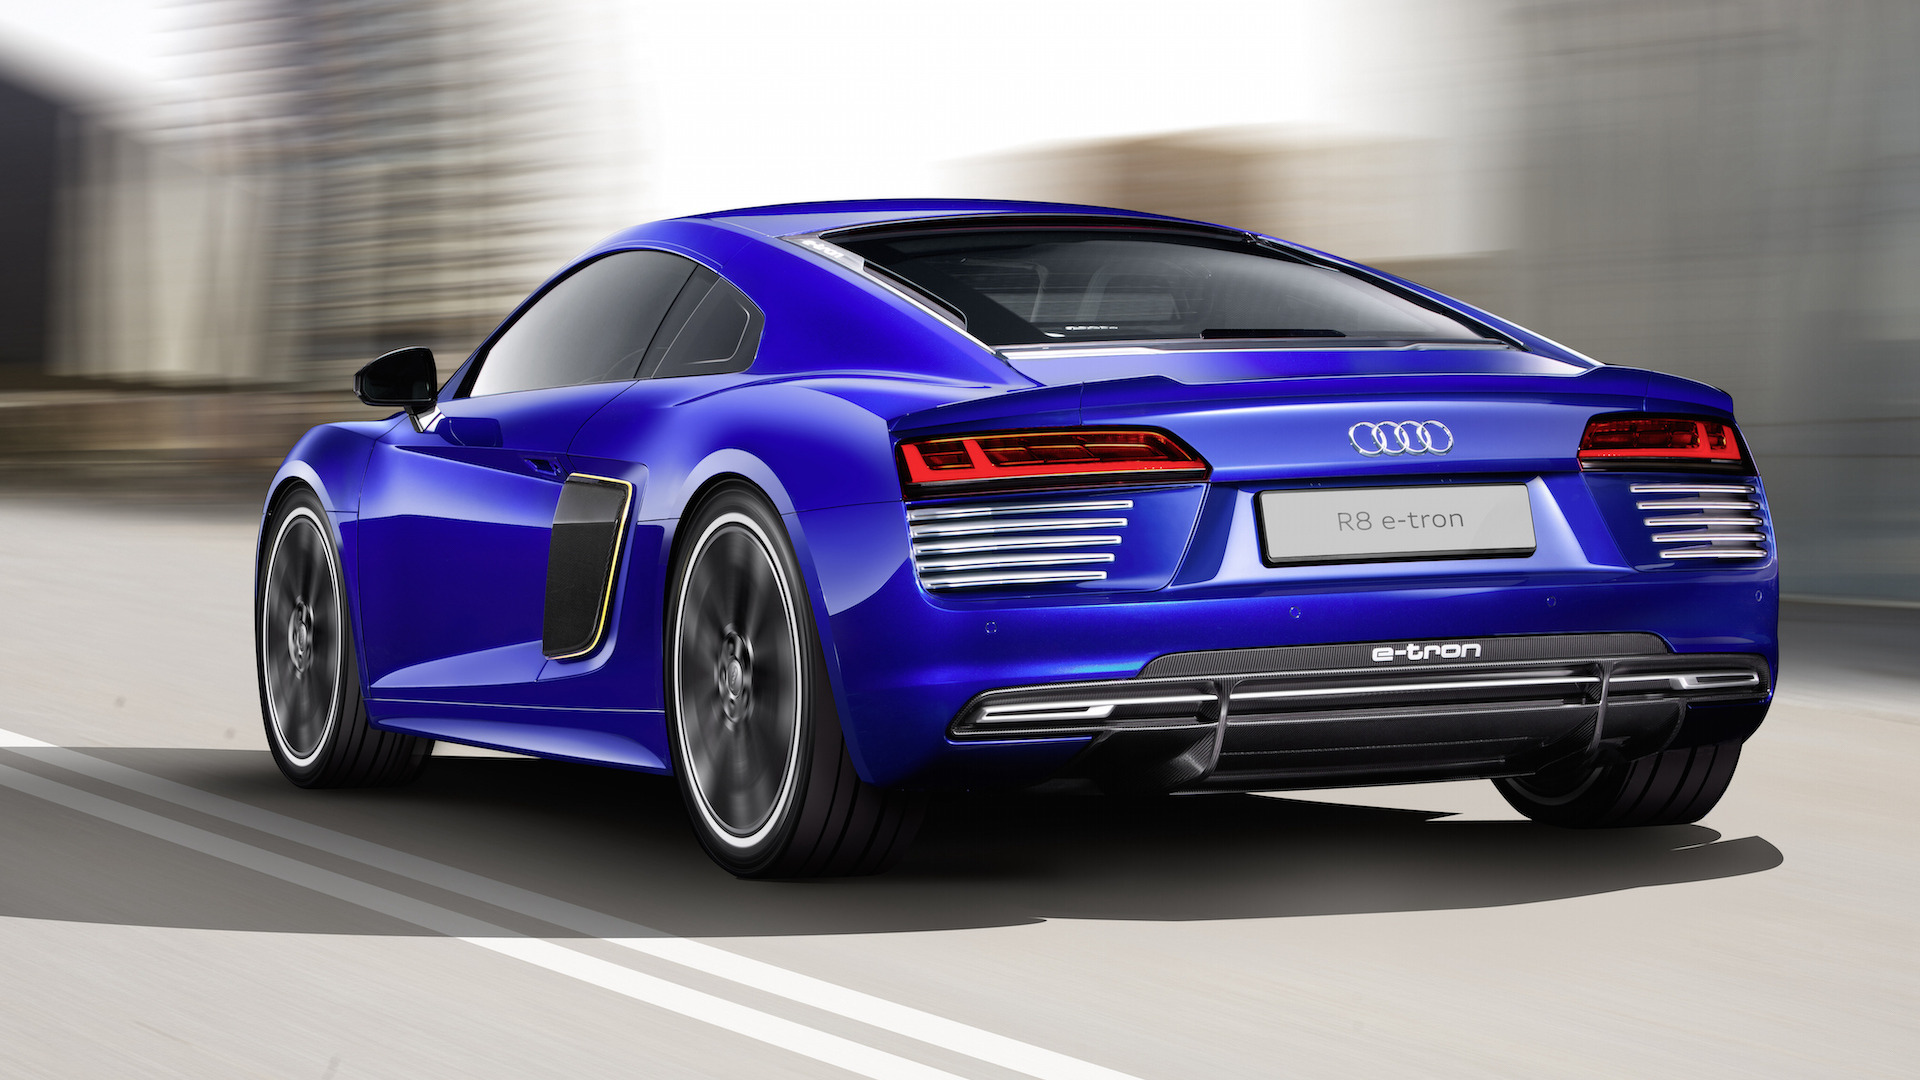 53 The 2020 Audi R8 E Tron Redesign and Concept